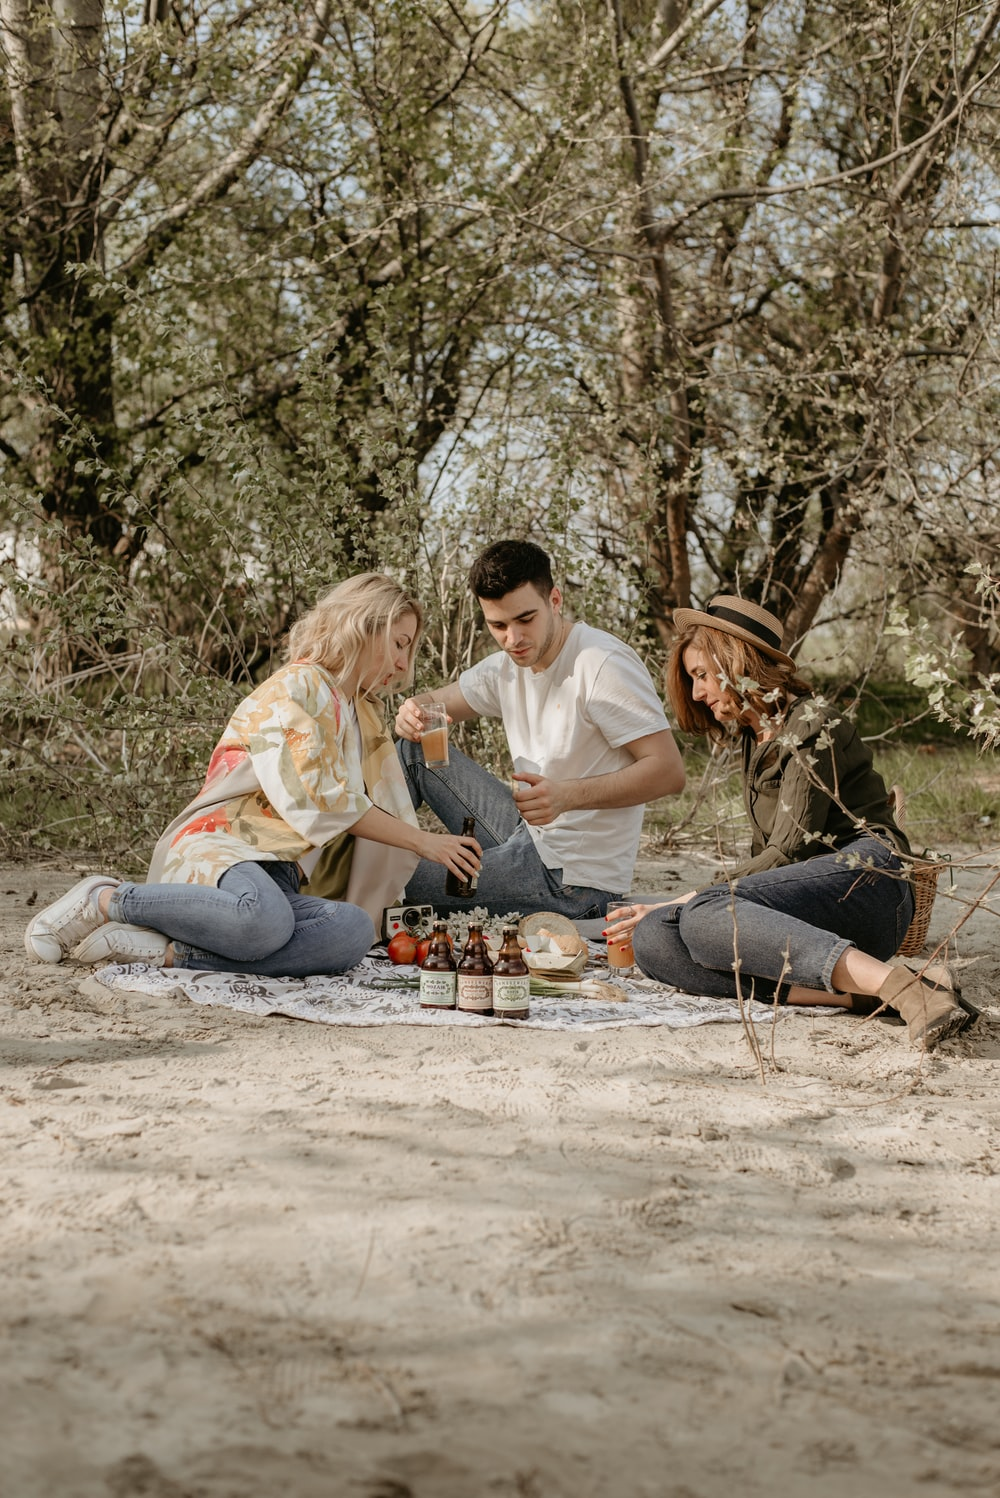 people doing picnic during daytime